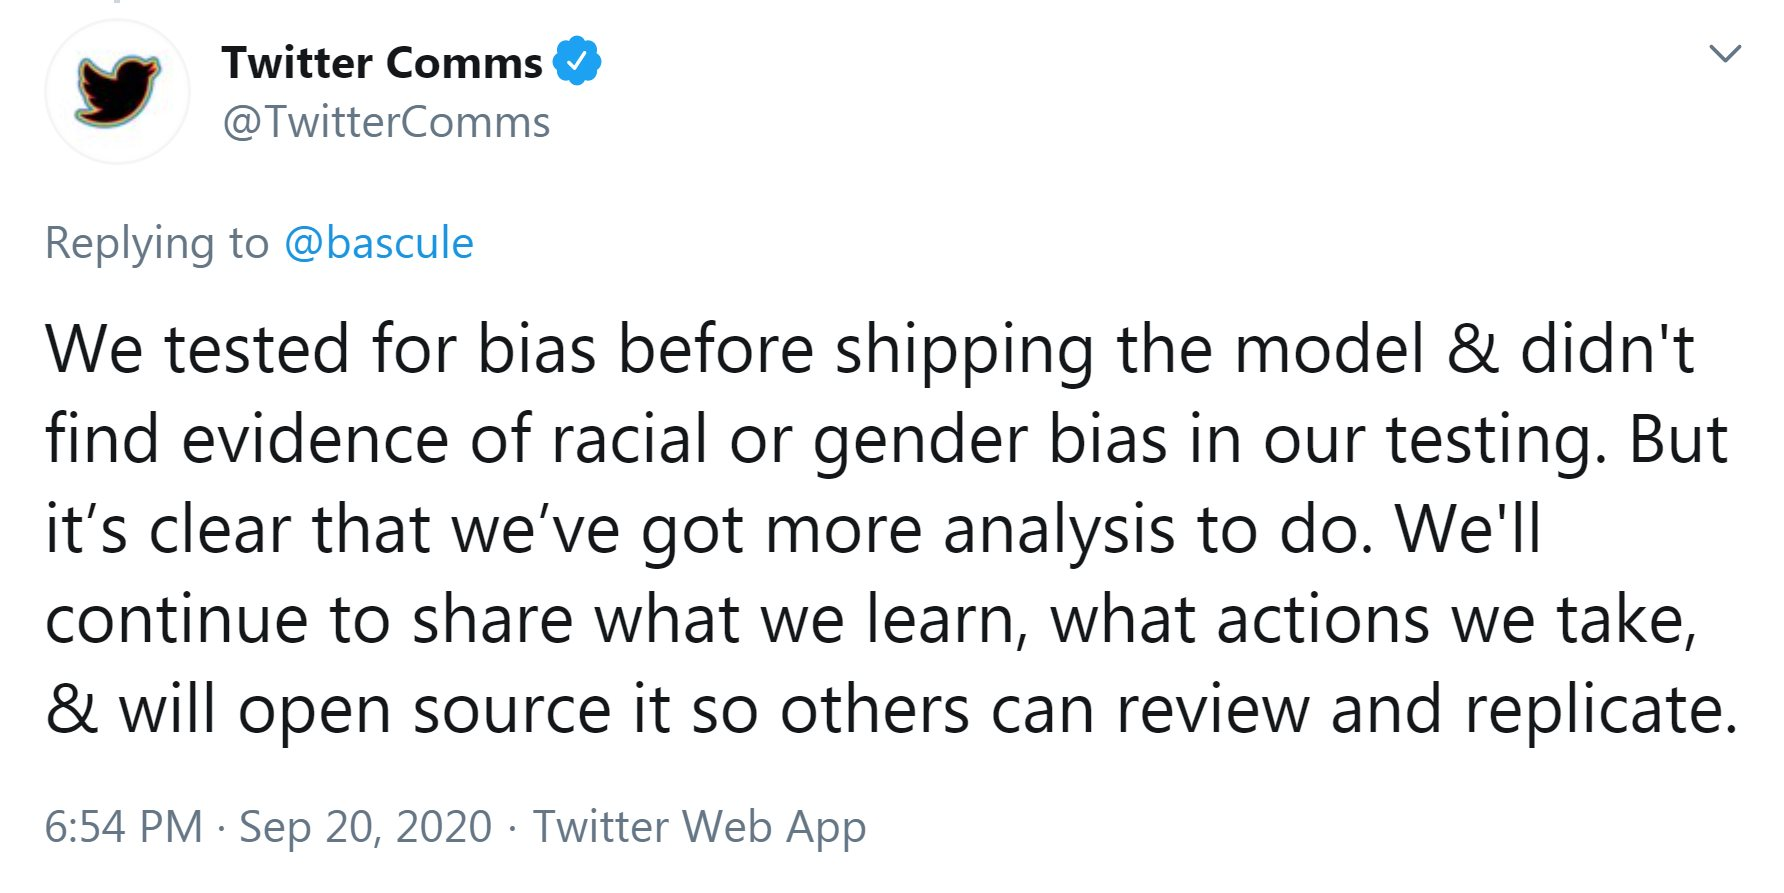 A tweet from @TwitterComms reads: We tested for bias before shipping the model & didn't find evidence of racial or gender bias in our testing. But it's clear that we've got more analysis to do. We'll continue to share what we learn, what actions we take, & will open source it so others can review and replicate.